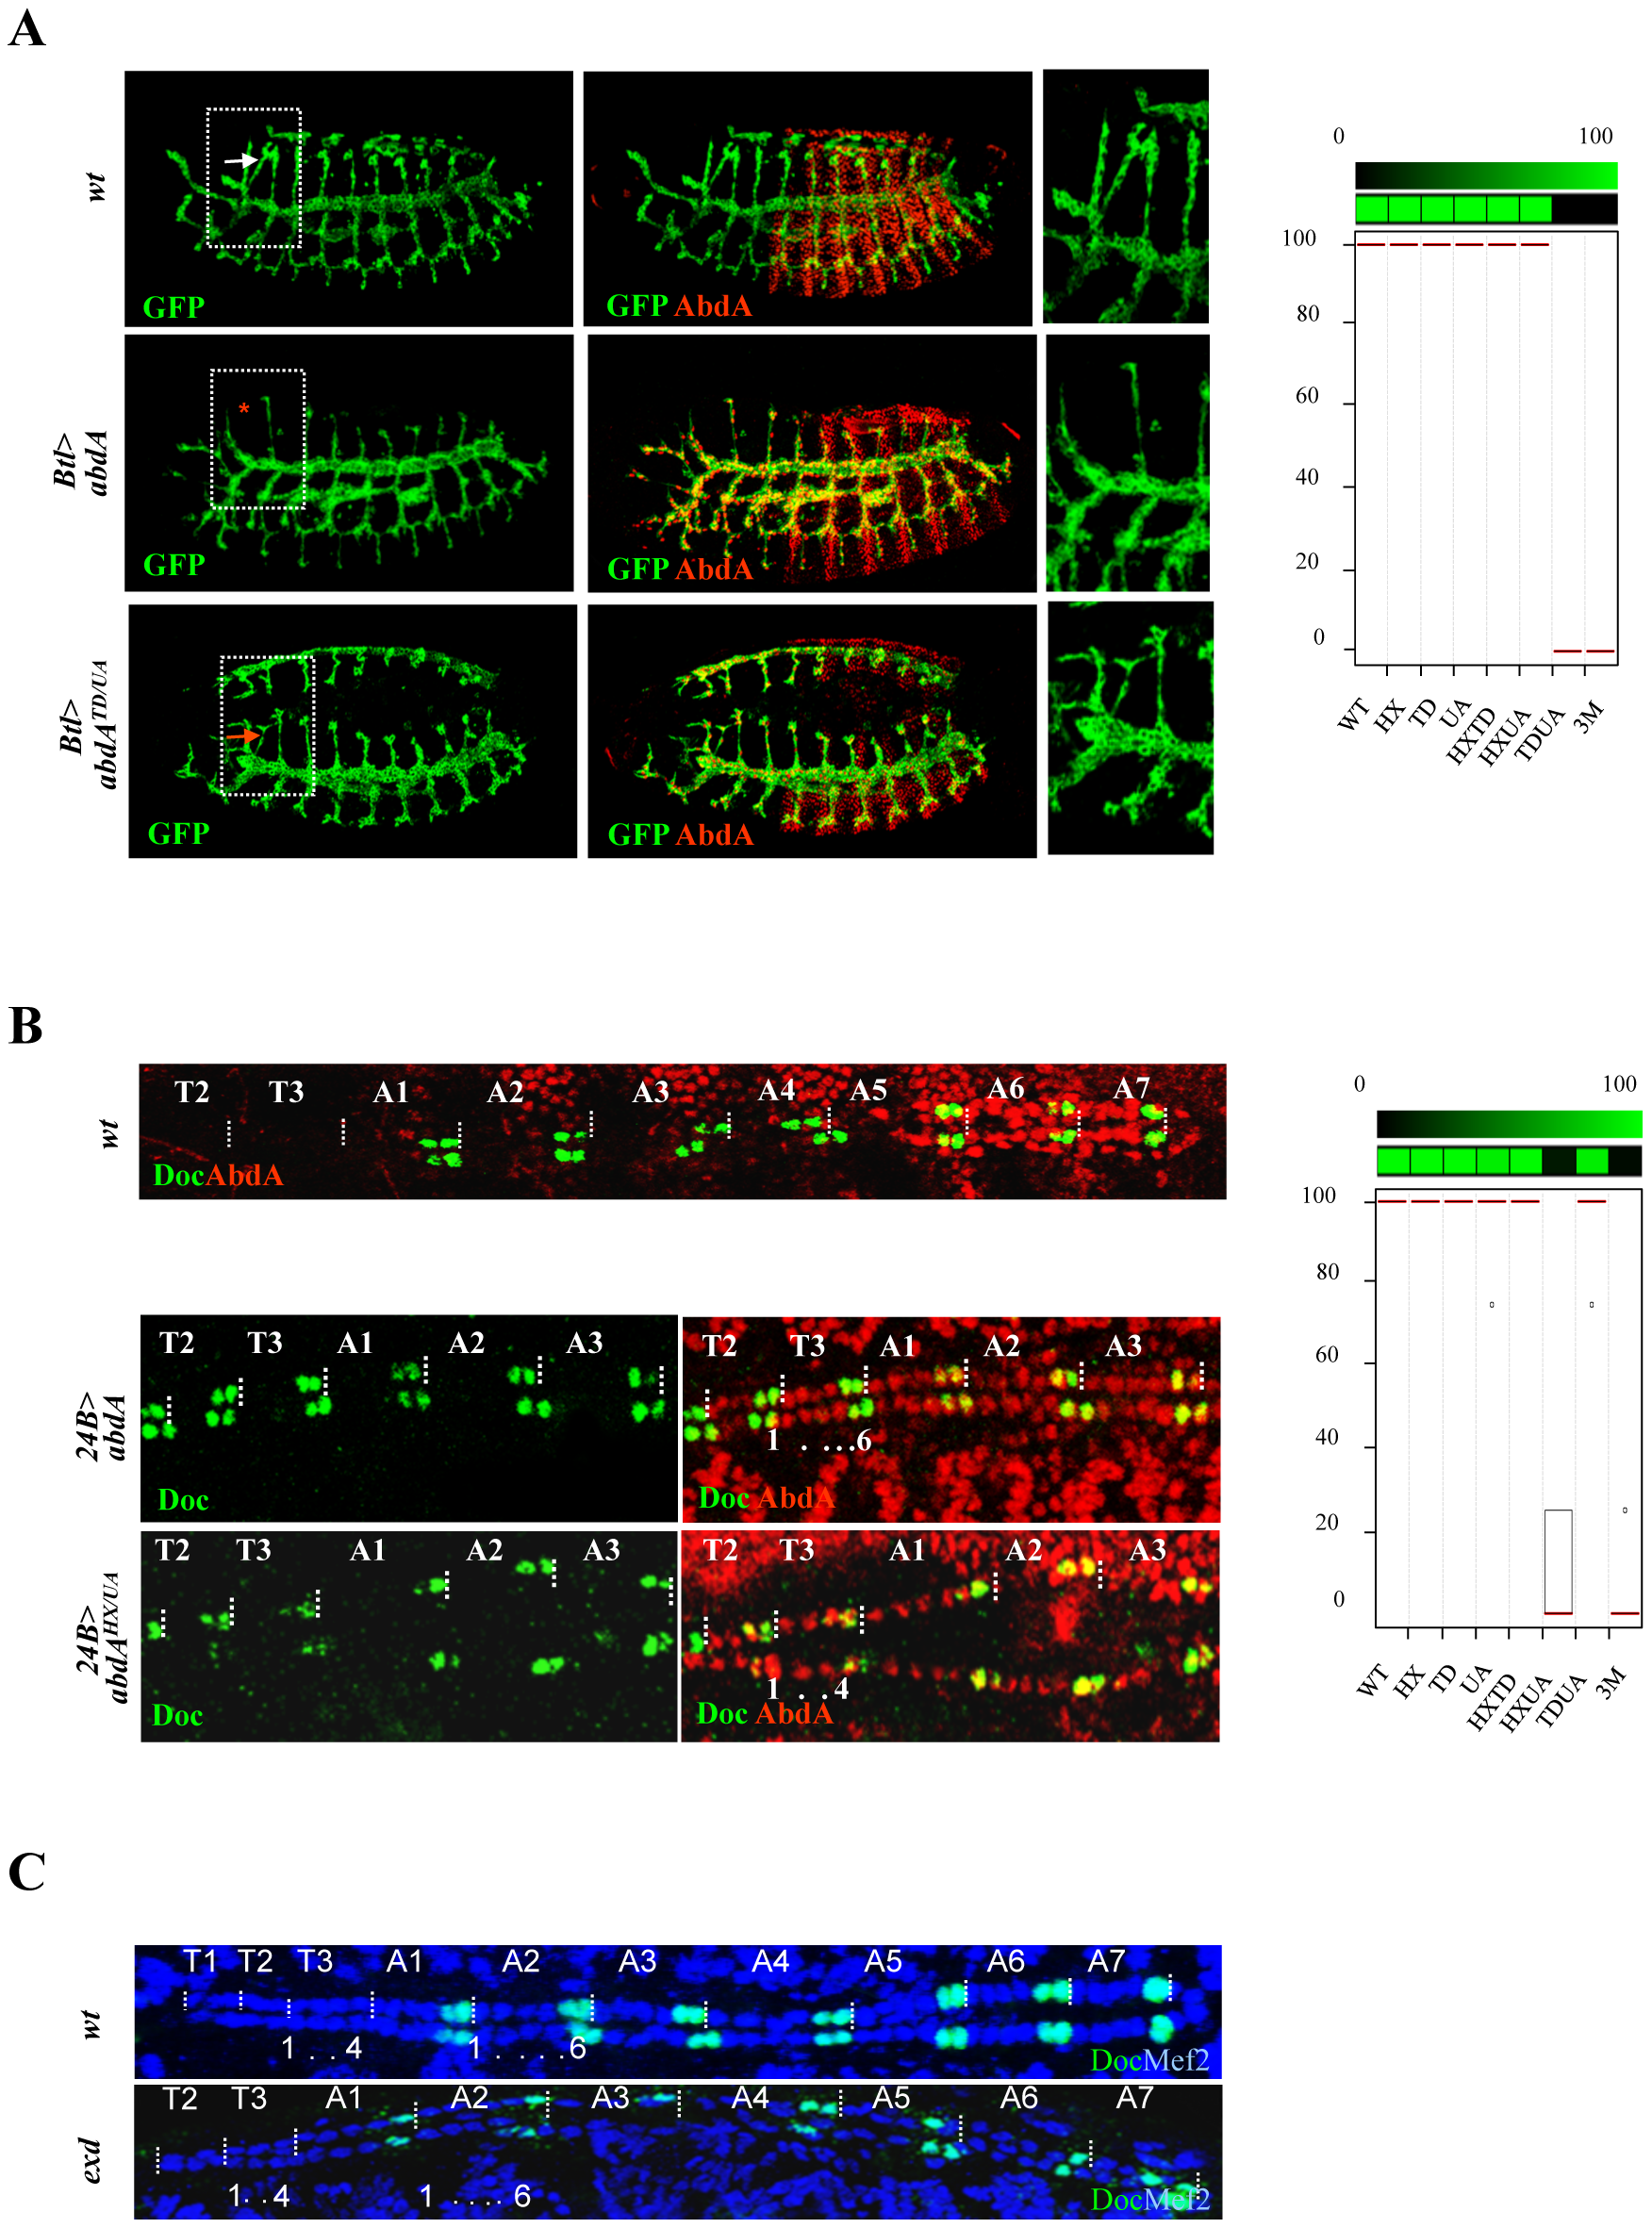 Functional redundancy of the HX, TD, and UA protein domains.